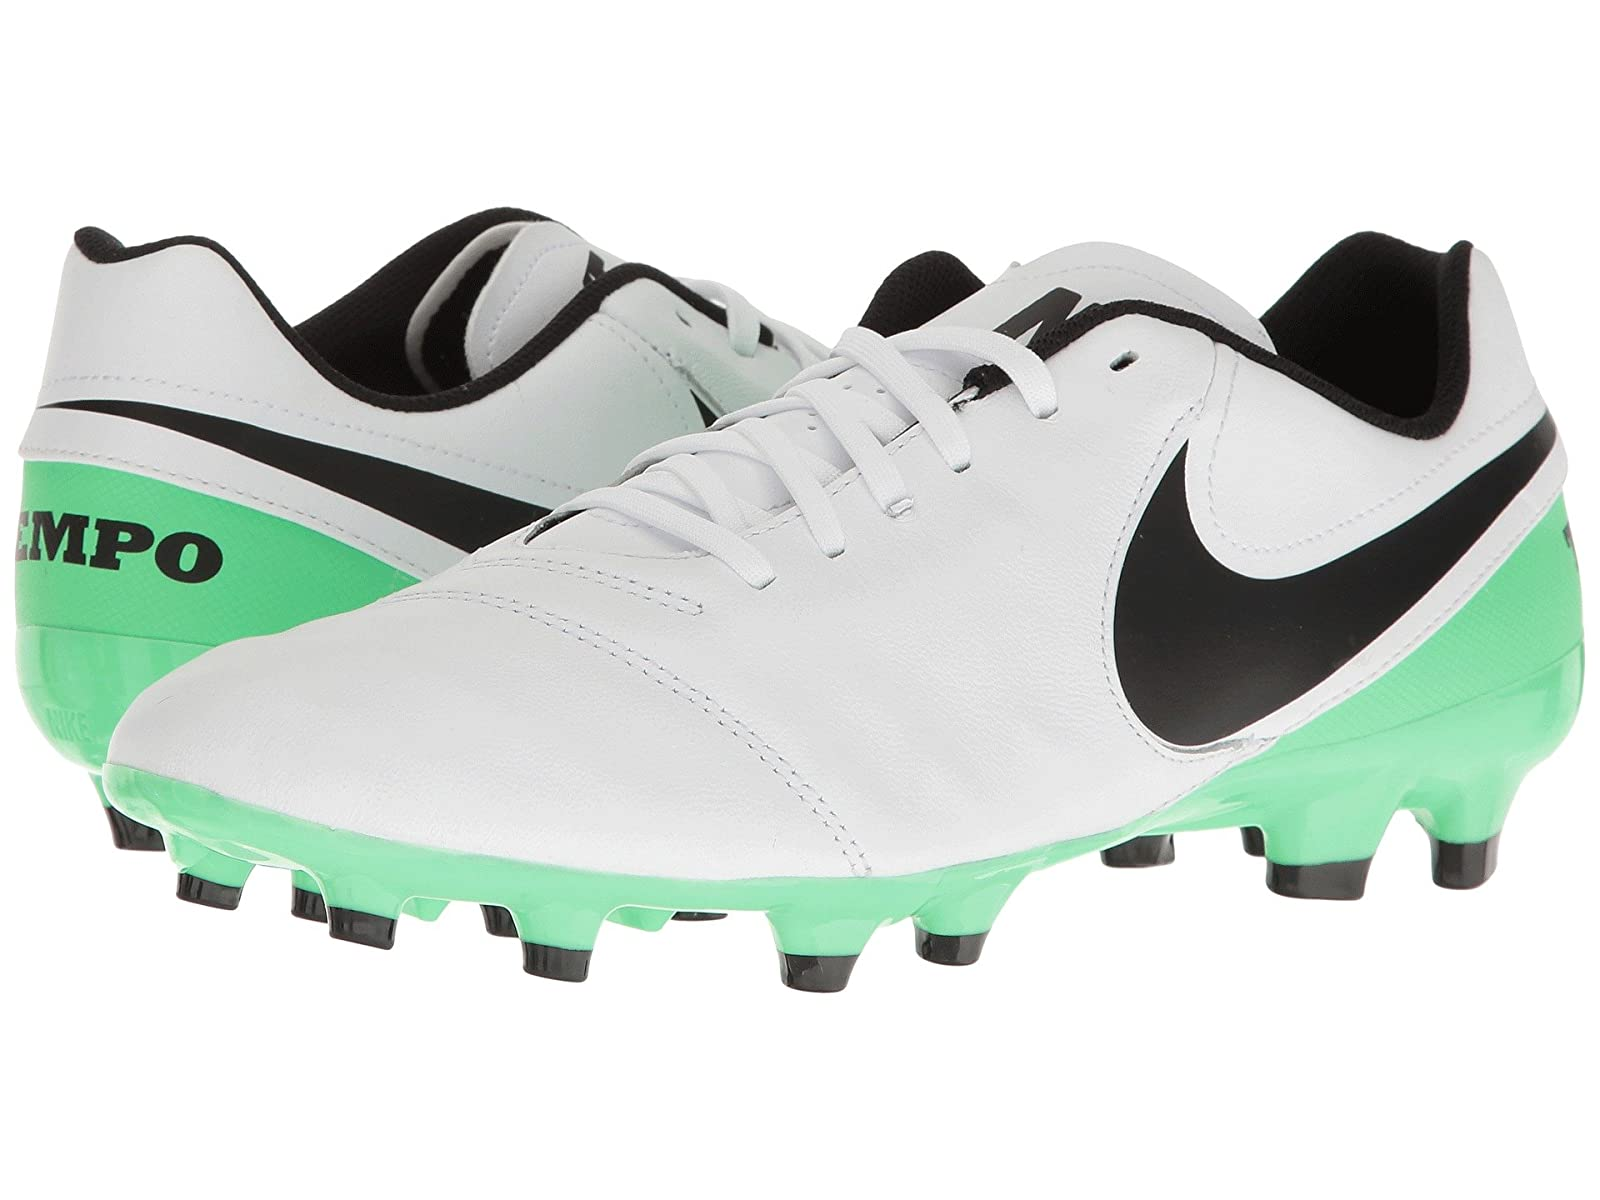 Nike Tiempo Genio II Leather FGCheap and distinctive eye-catching shoes